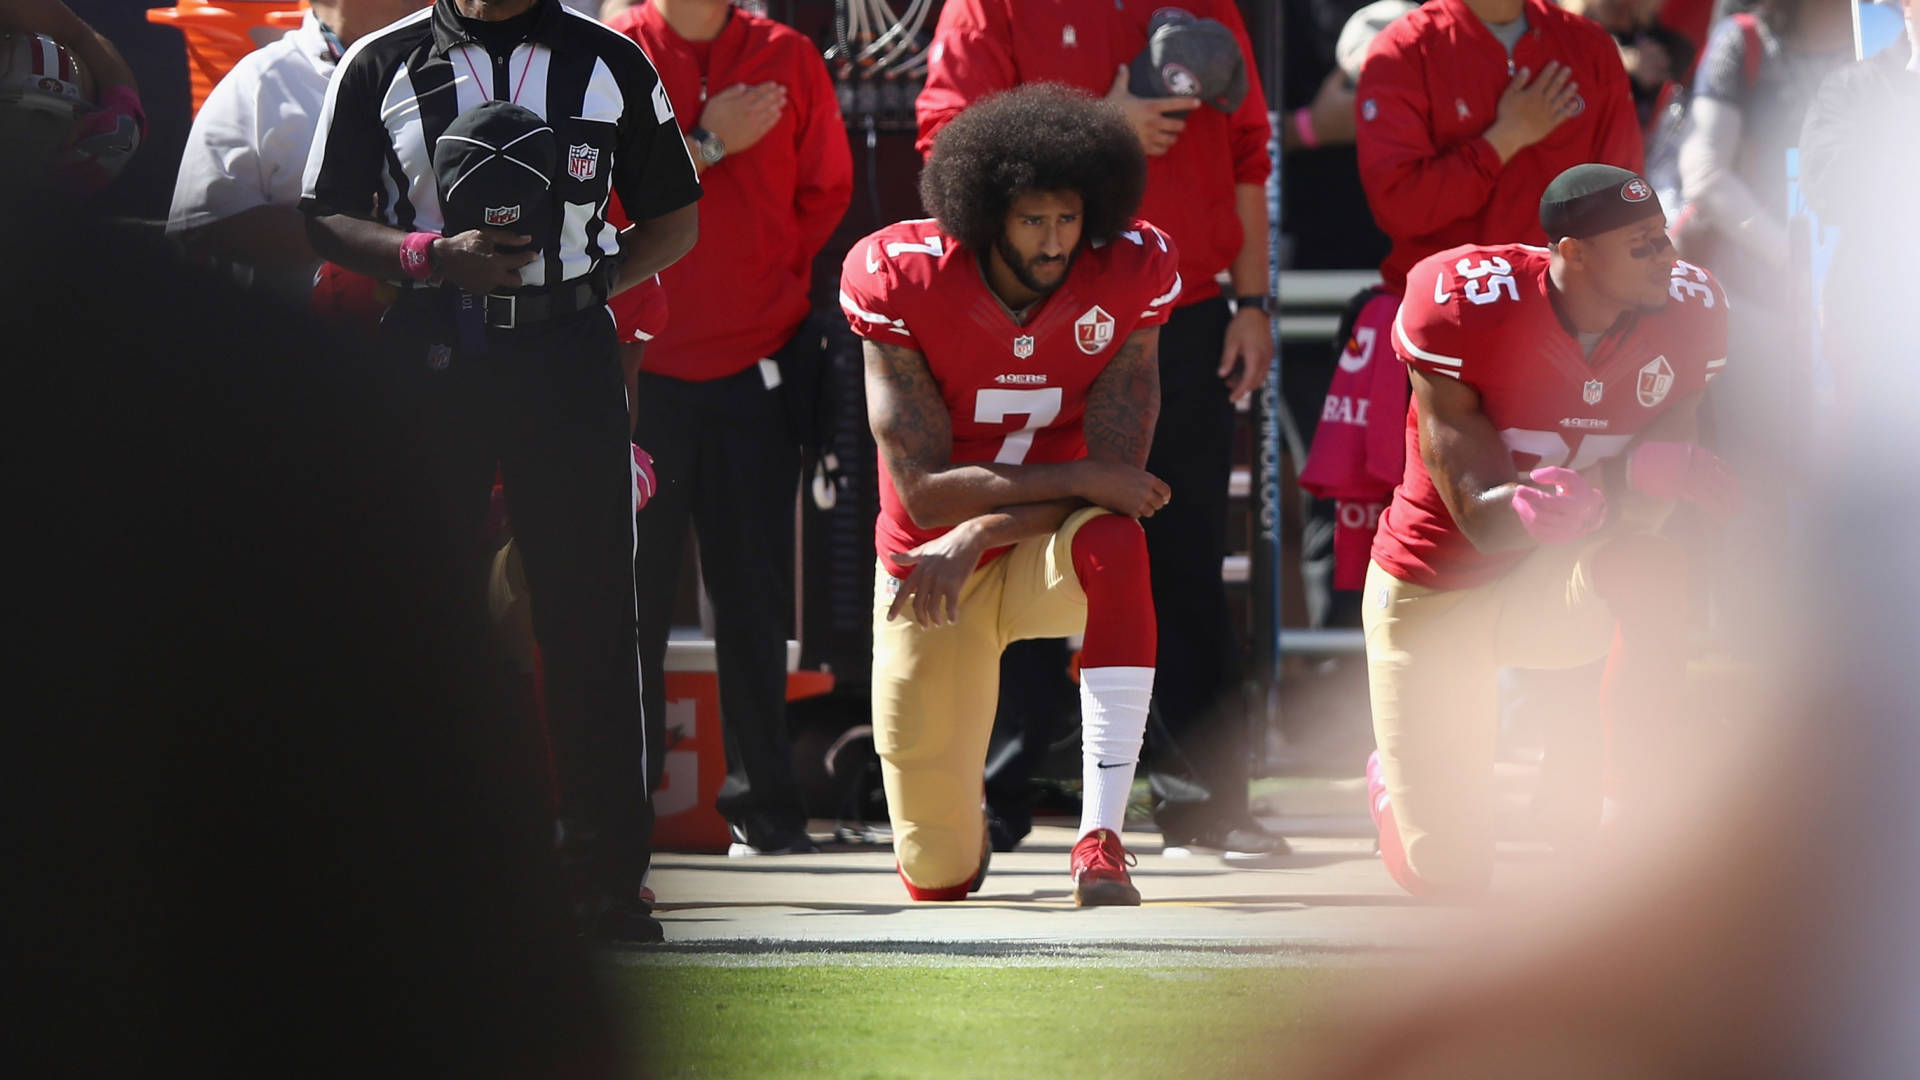 Colin Kaepernick kneels for the national anthem at Levi's Stadium in Santa Clara, Calif., on Oct. 23, 2016. Ezra Shaw/Getty Images